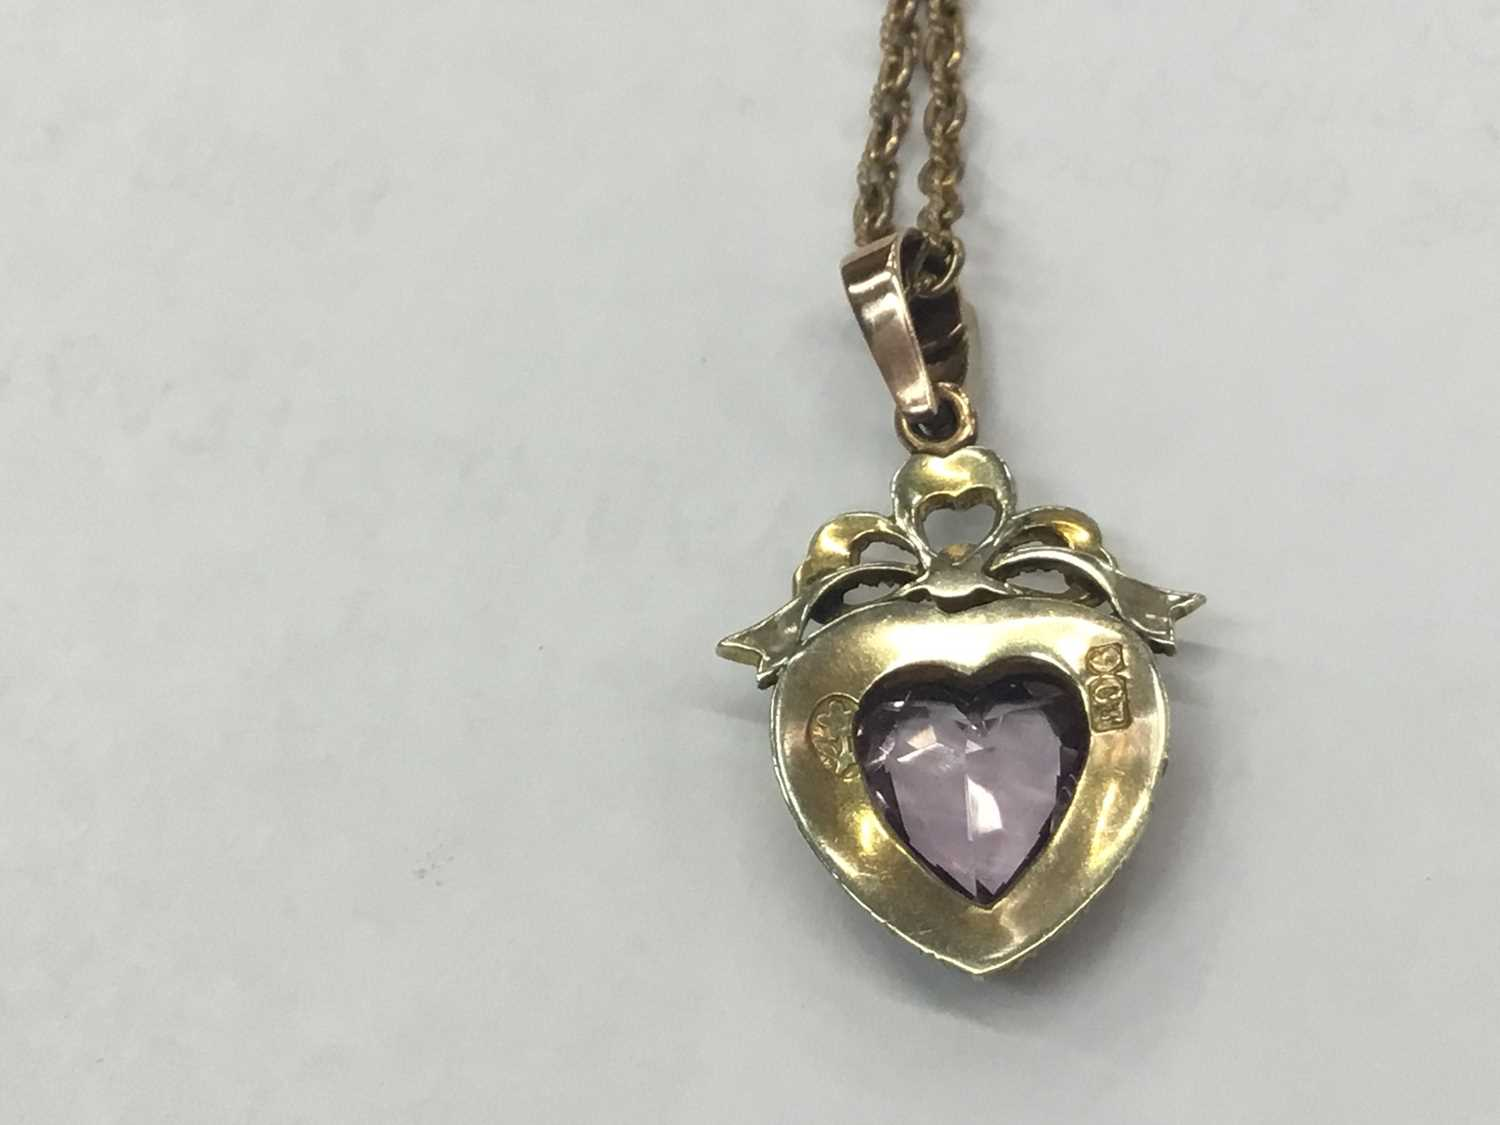 Edwardian 9ct gold amethyst and seed pearl heart shaped pendant on chain - Image 2 of 2